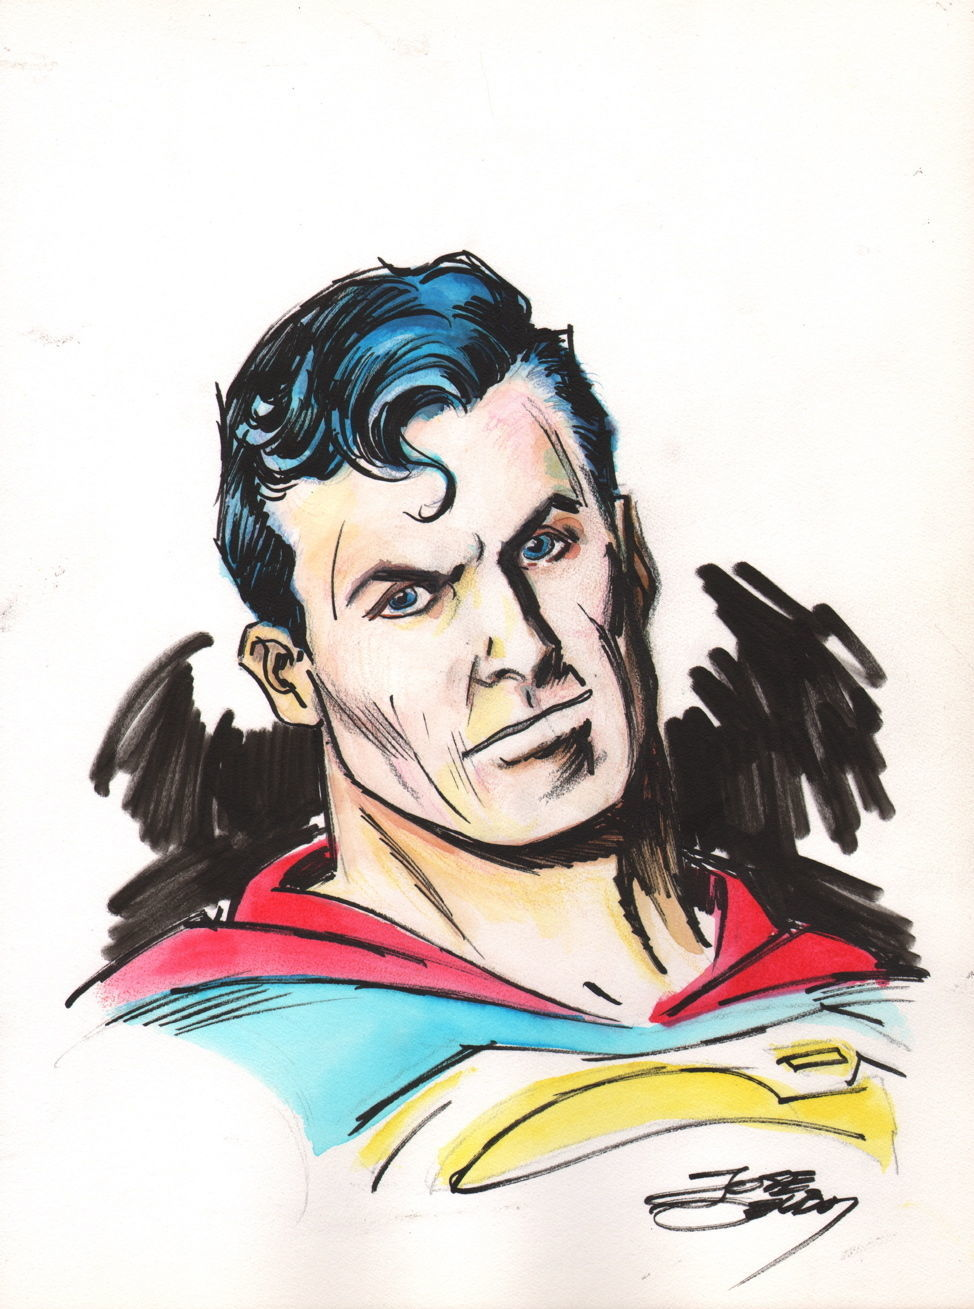 Superman commission by Jose Delbo.